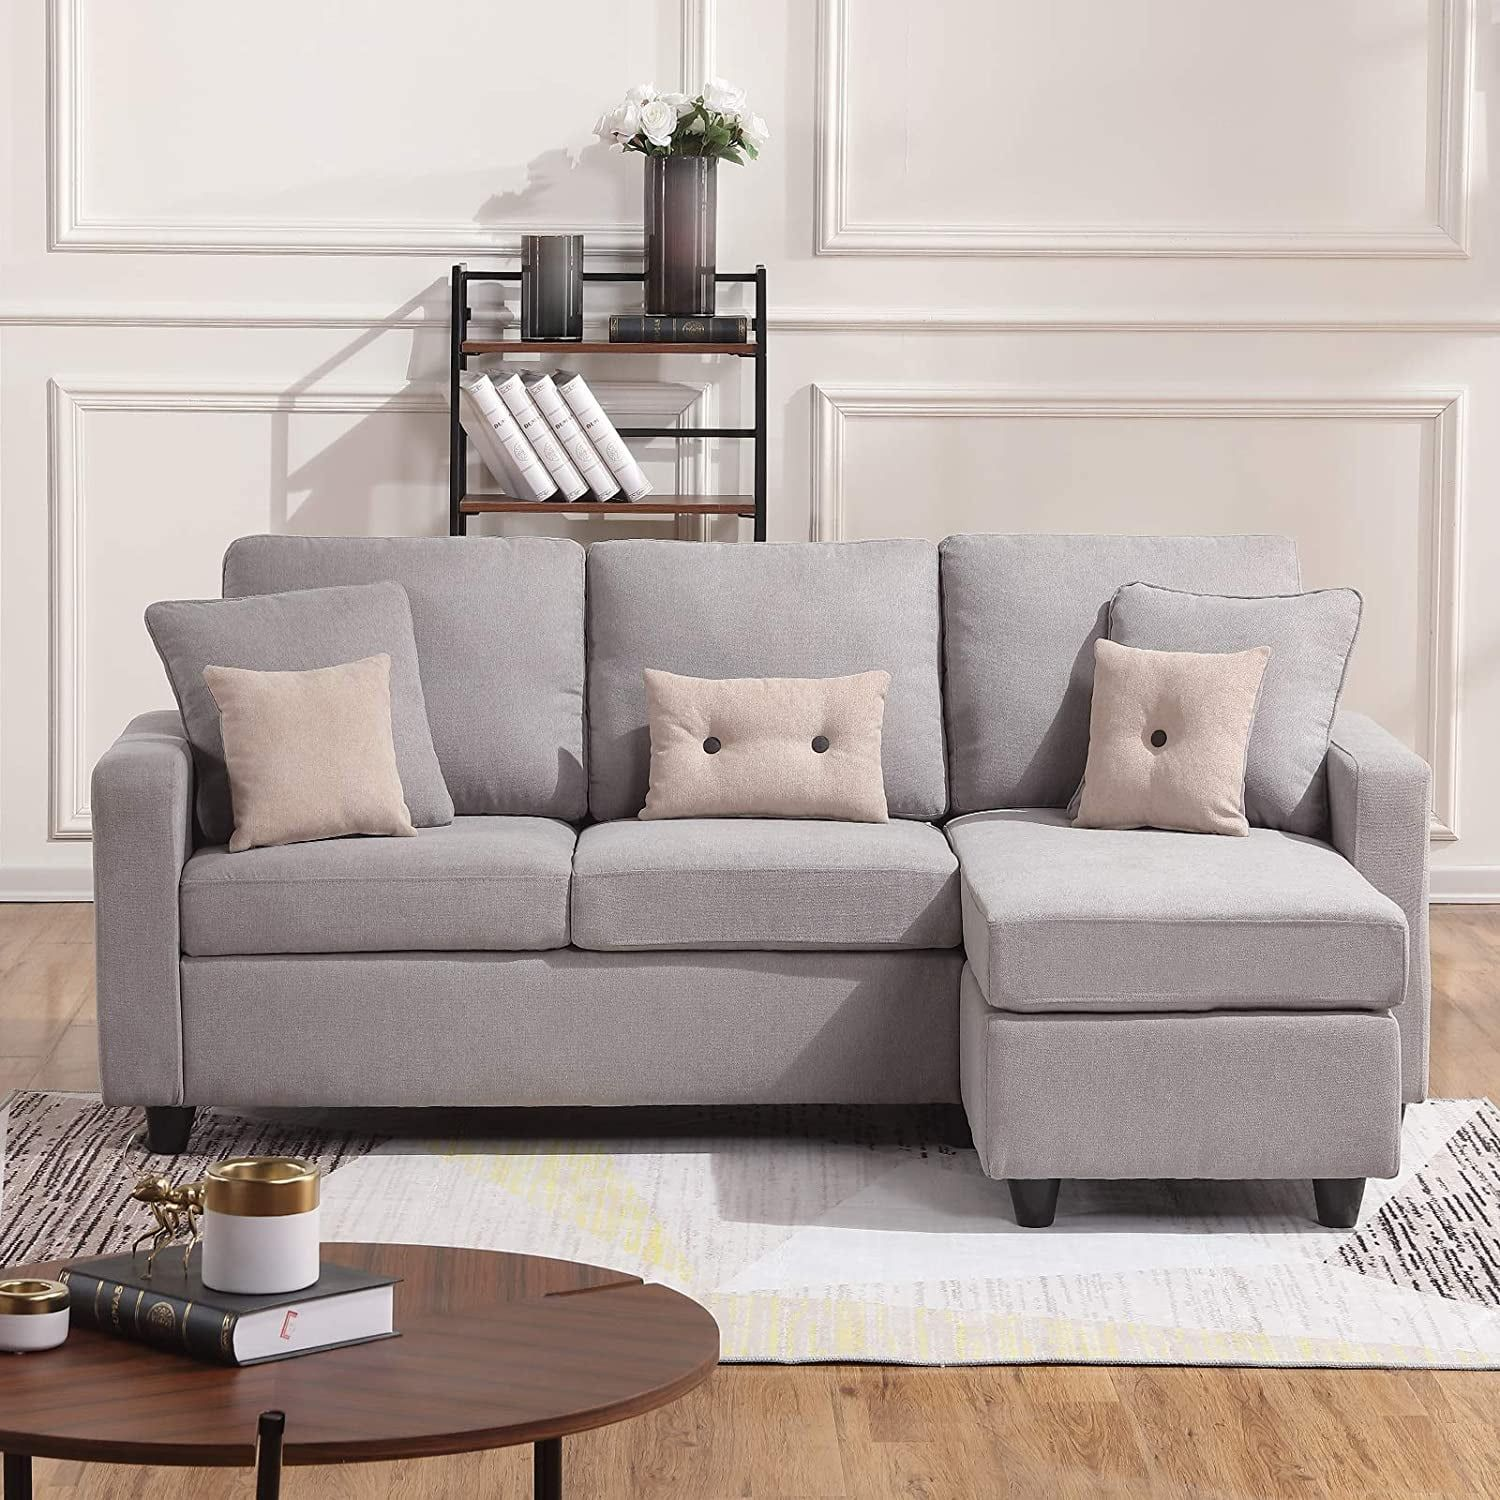 This Comfy Sectional Sofa Also Turns Into a Bed and Fits